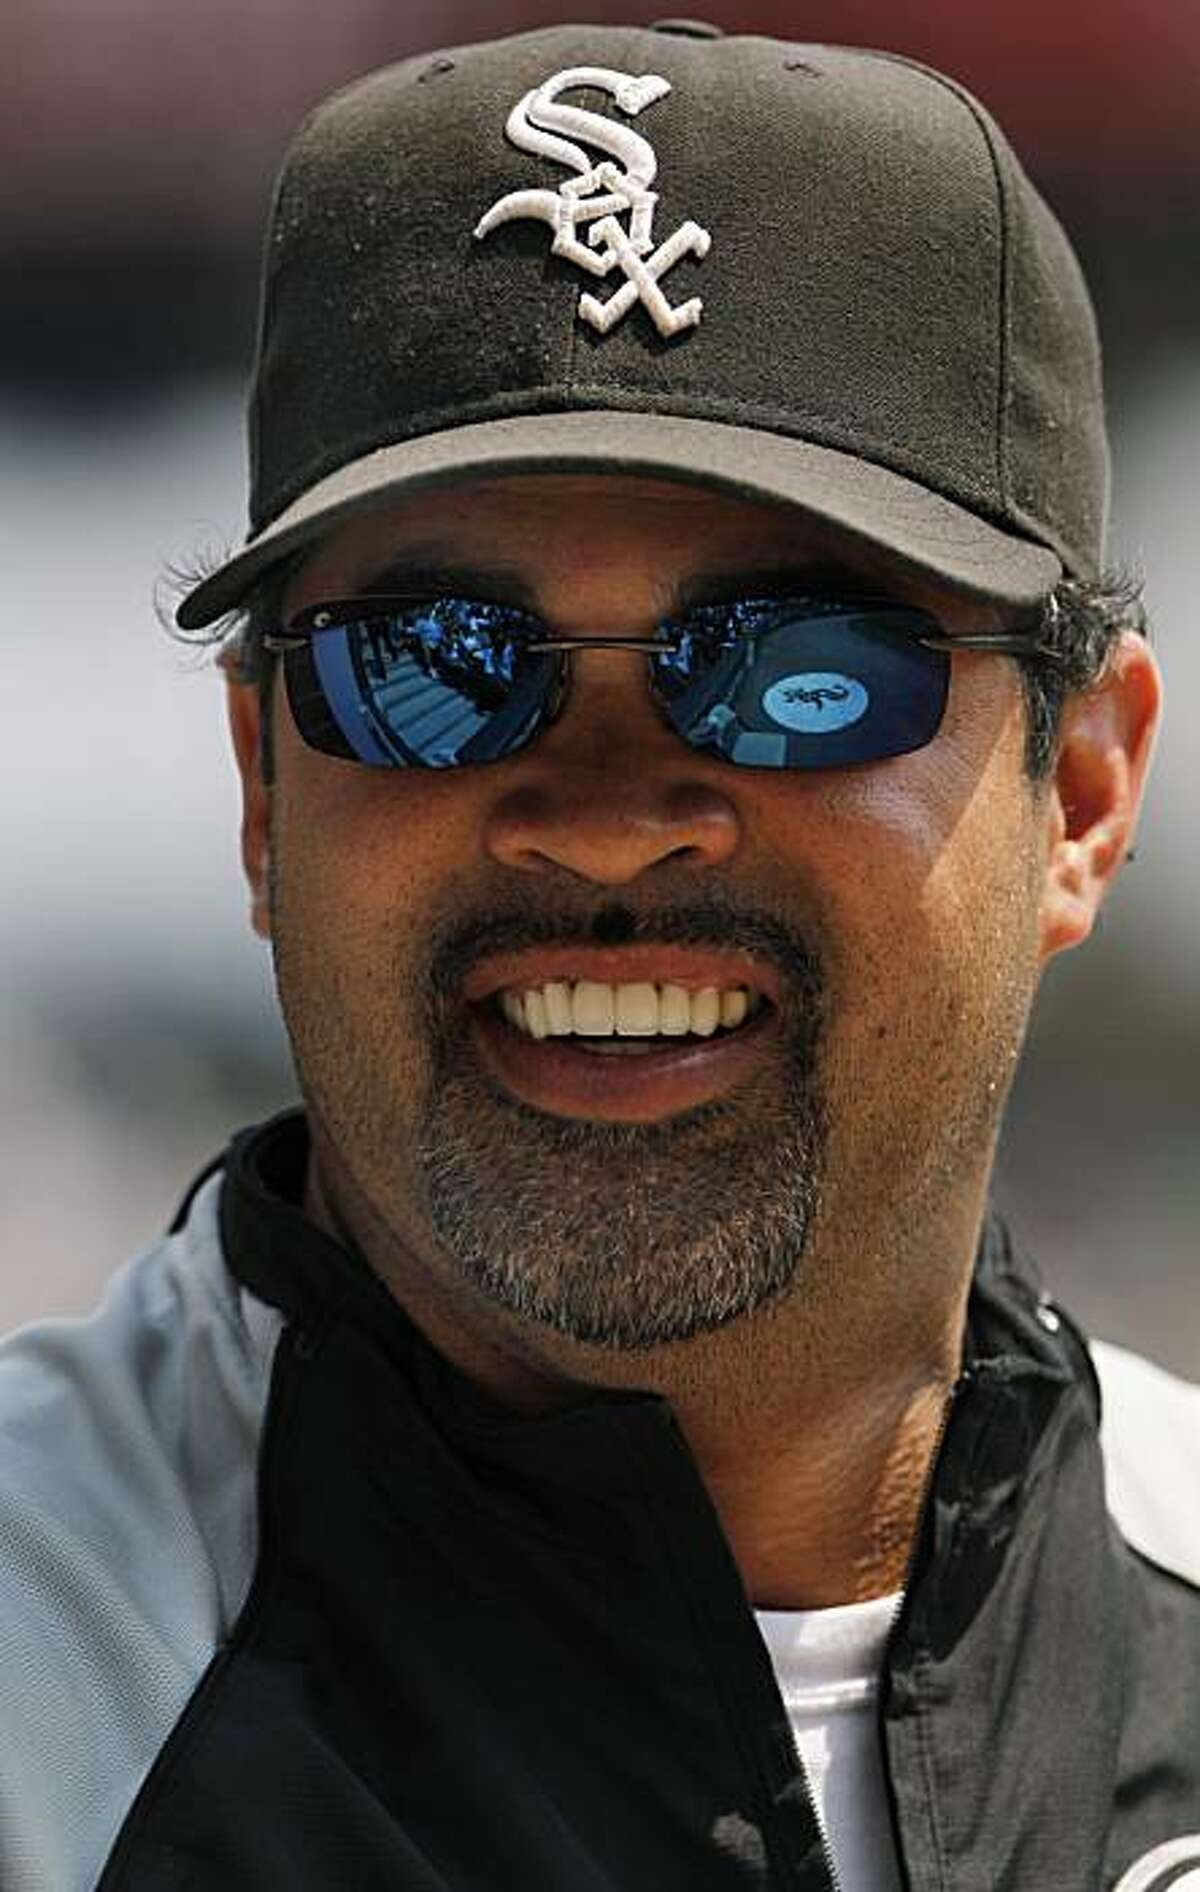 Chicago White Sox manager Ozzie Guillen talks with a player before a baseball game against the Oakland Athletics on Sunday, Aug. 1, 2010, in Chicago. The White Sox won 4-1.